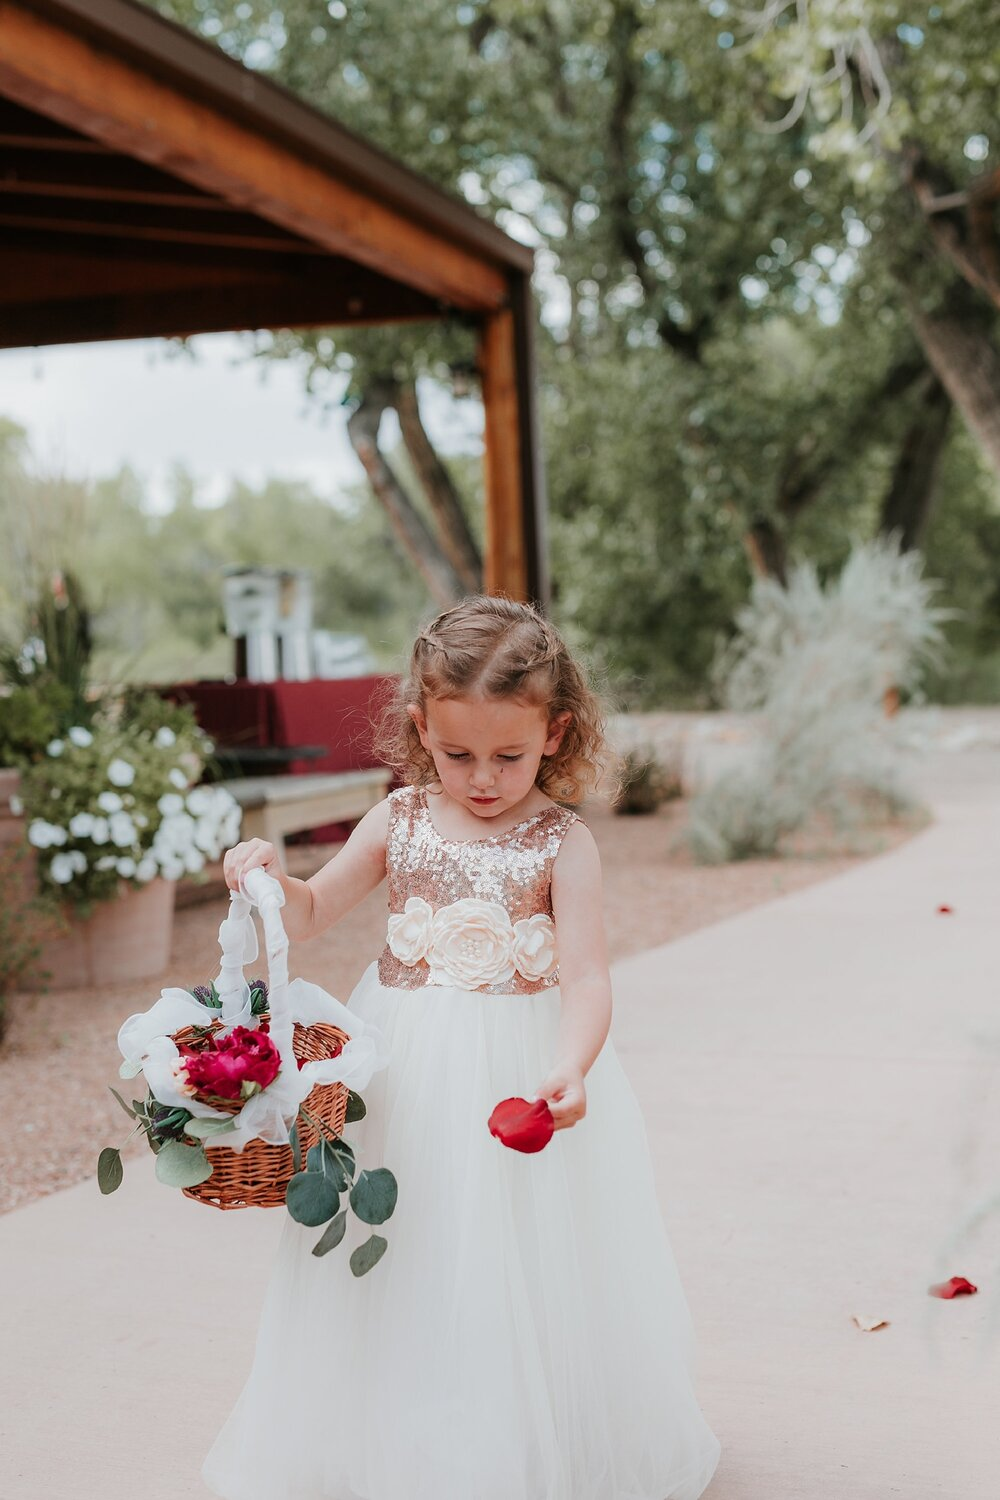 Alicia+lucia+photography+-+albuquerque+wedding+photographer+-+santa+fe+wedding+photography+-+new+mexico+wedding+photographer+-+new+mexico+wedding+-+fall+wedding+-+fall+wedding+florals+-+wedding+florals_0081.jpg